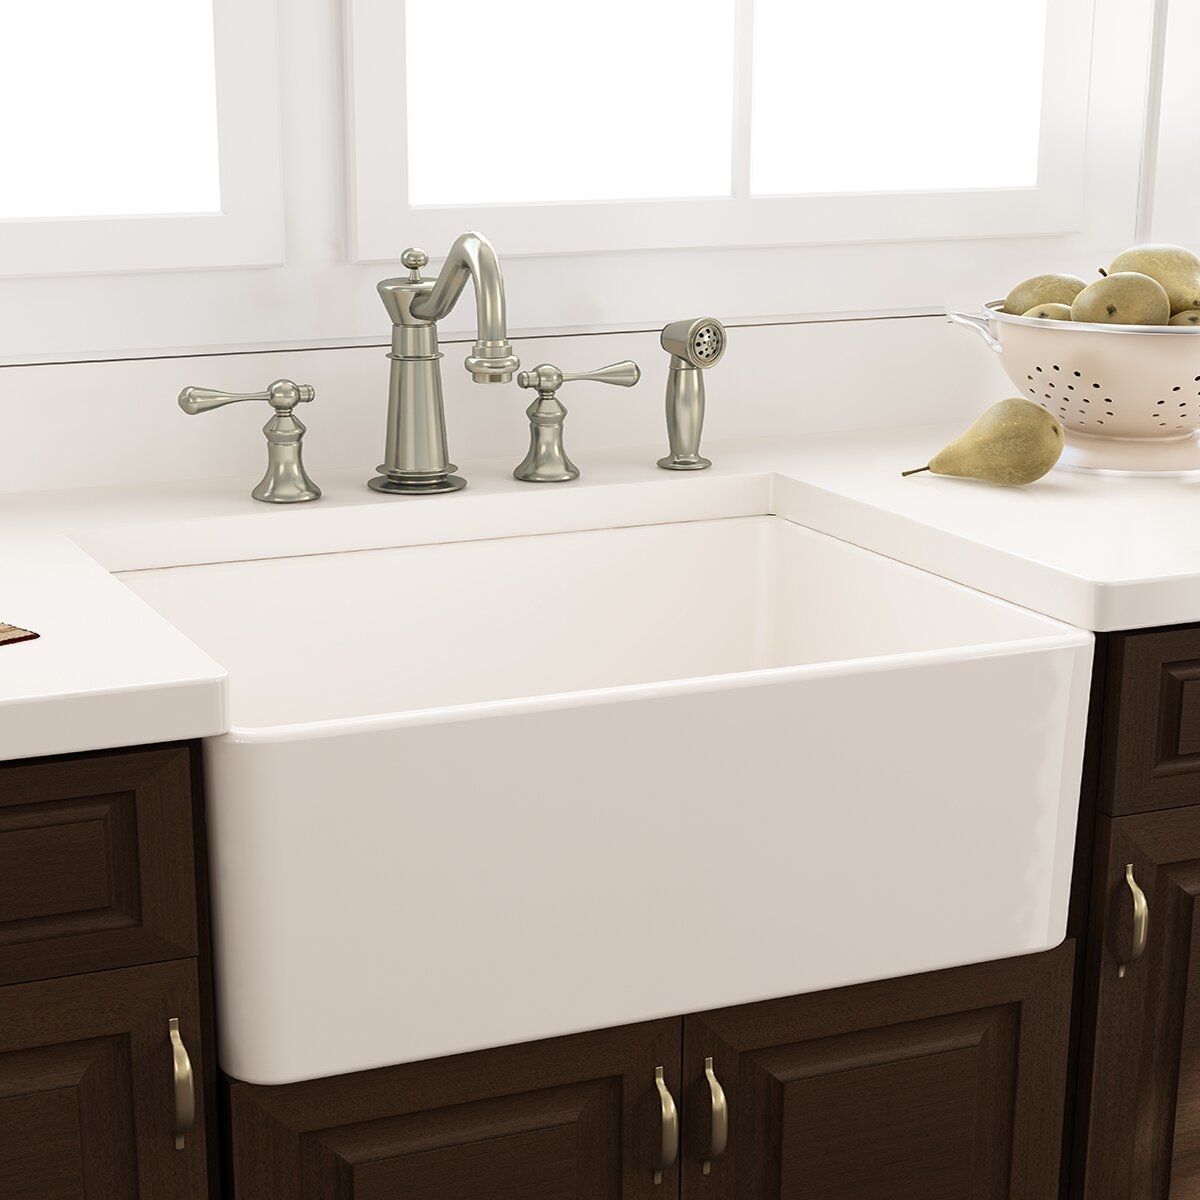 Nantucket Sinks X 18 Fireclay Farmhouse Kitchen Sink With Grid And Drain Reviews Wayfair